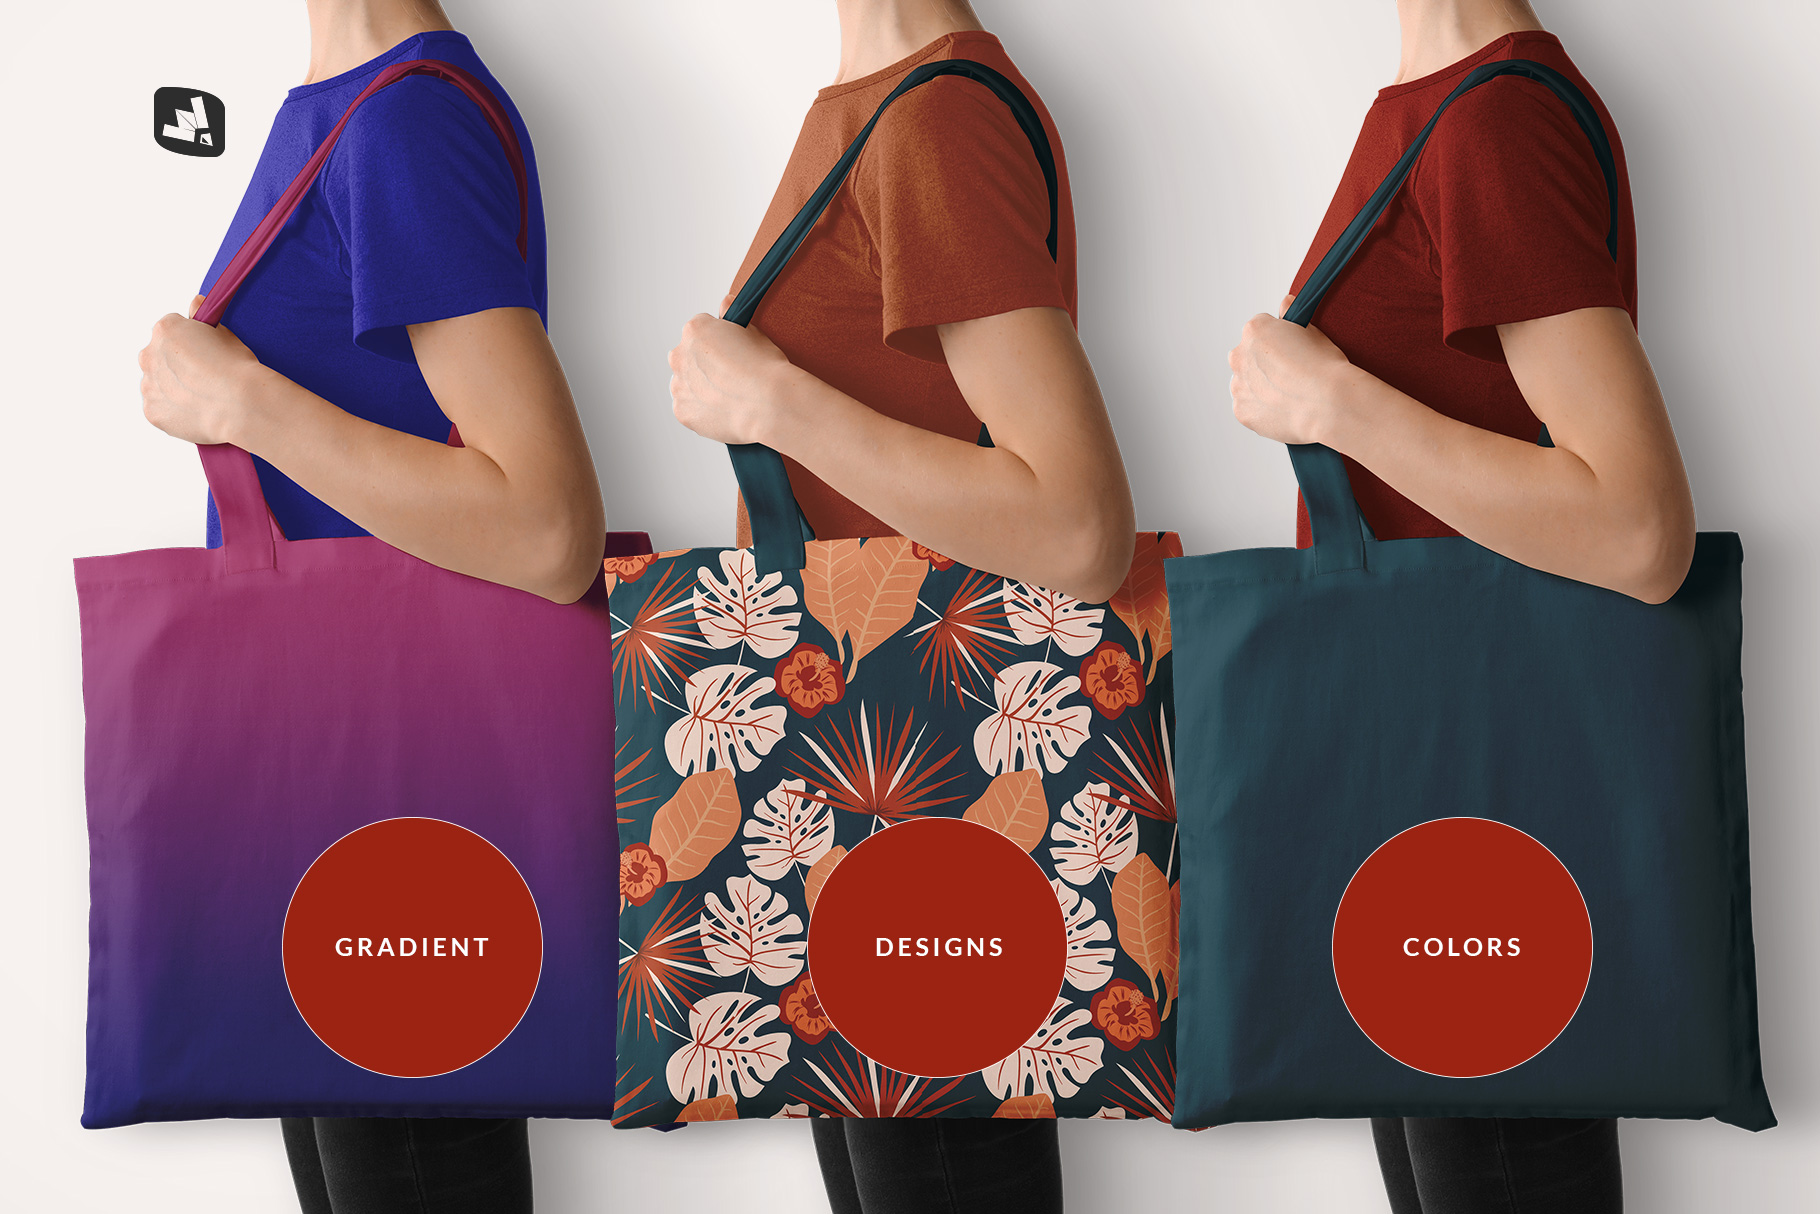 types of the large cotton bag mockup with model